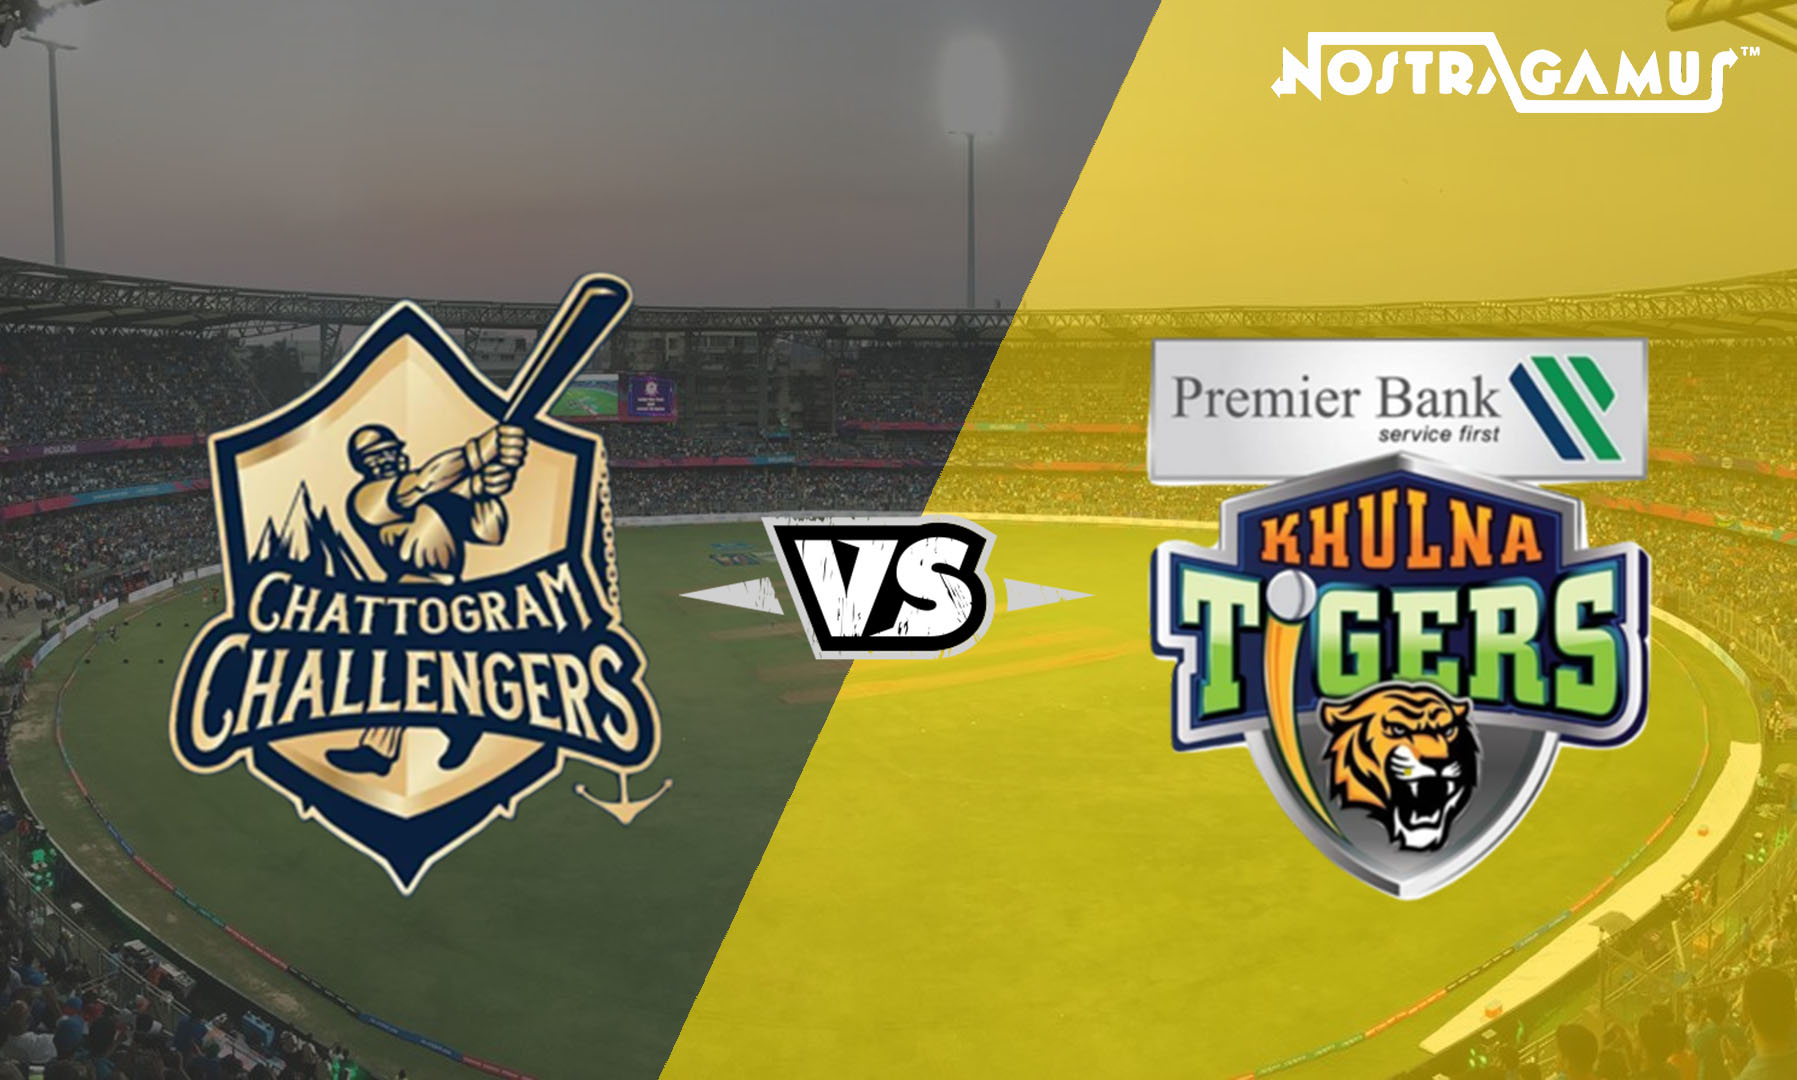 BPL 2019 Match Prediction: Chattogram Challengers vs Khulna Tigers